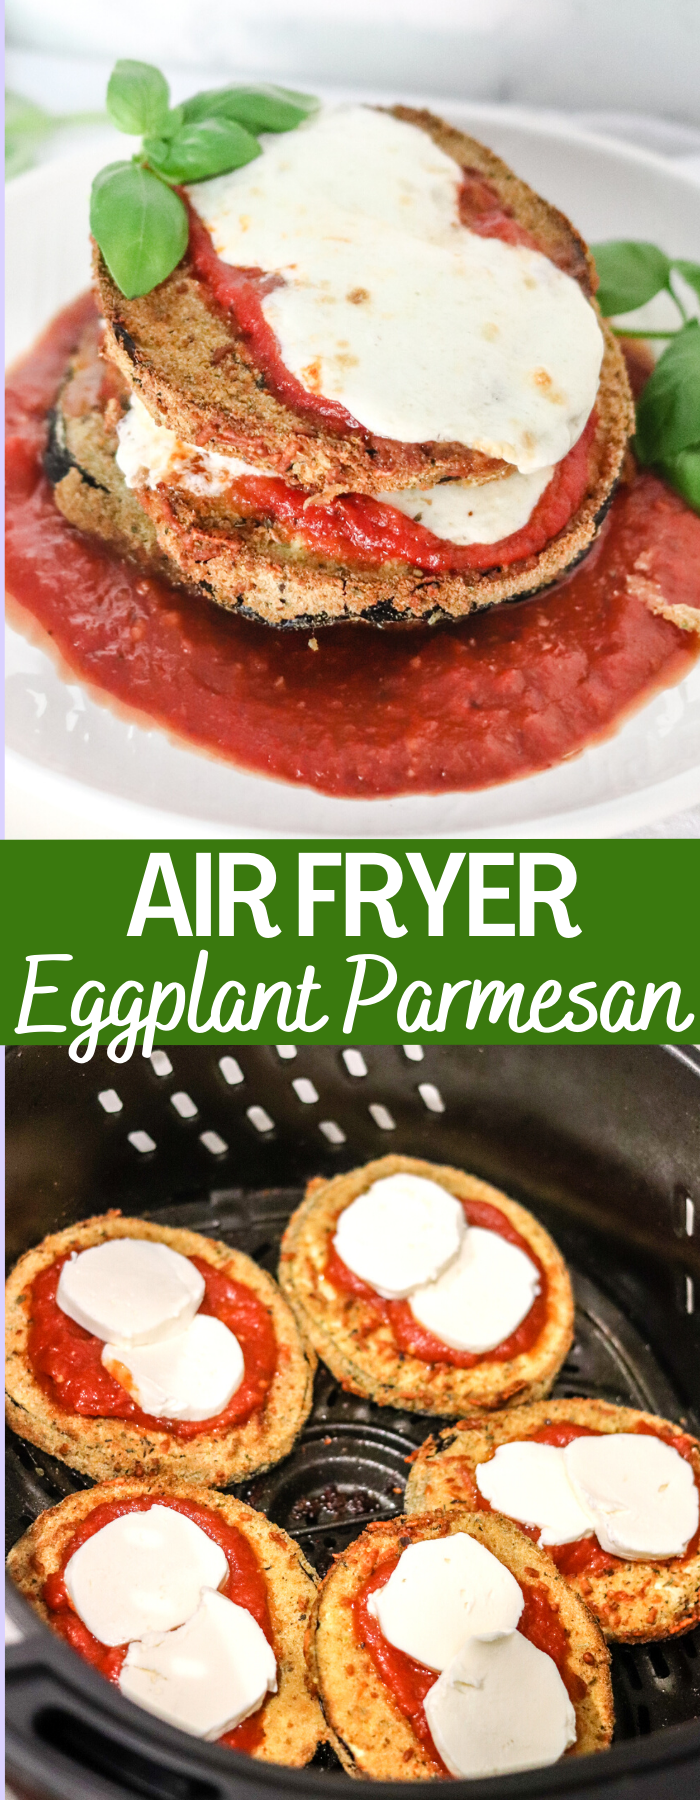 Making Eggplant Parmesan Has Never Been Easier Than With The Air Fryer Crispy On The Outside And Creamy On The Insid In 2020 Recipes Eggplant Parmesan Cooking Recipes